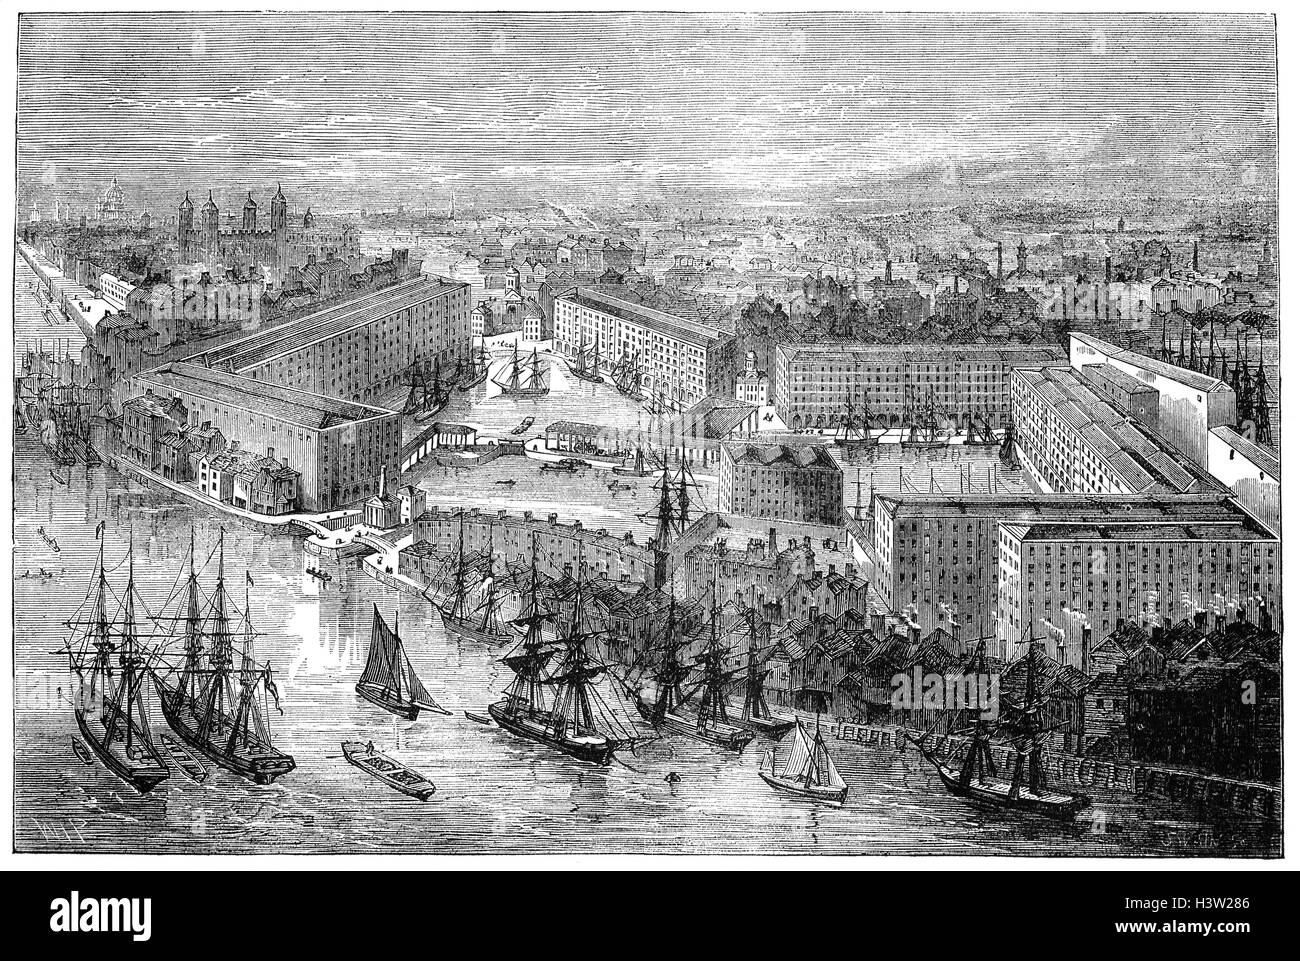 St Katharine Docks, in the London Borough of Tower Hamlets, was designed by engineer Thomas Telford and was his - Stock Image